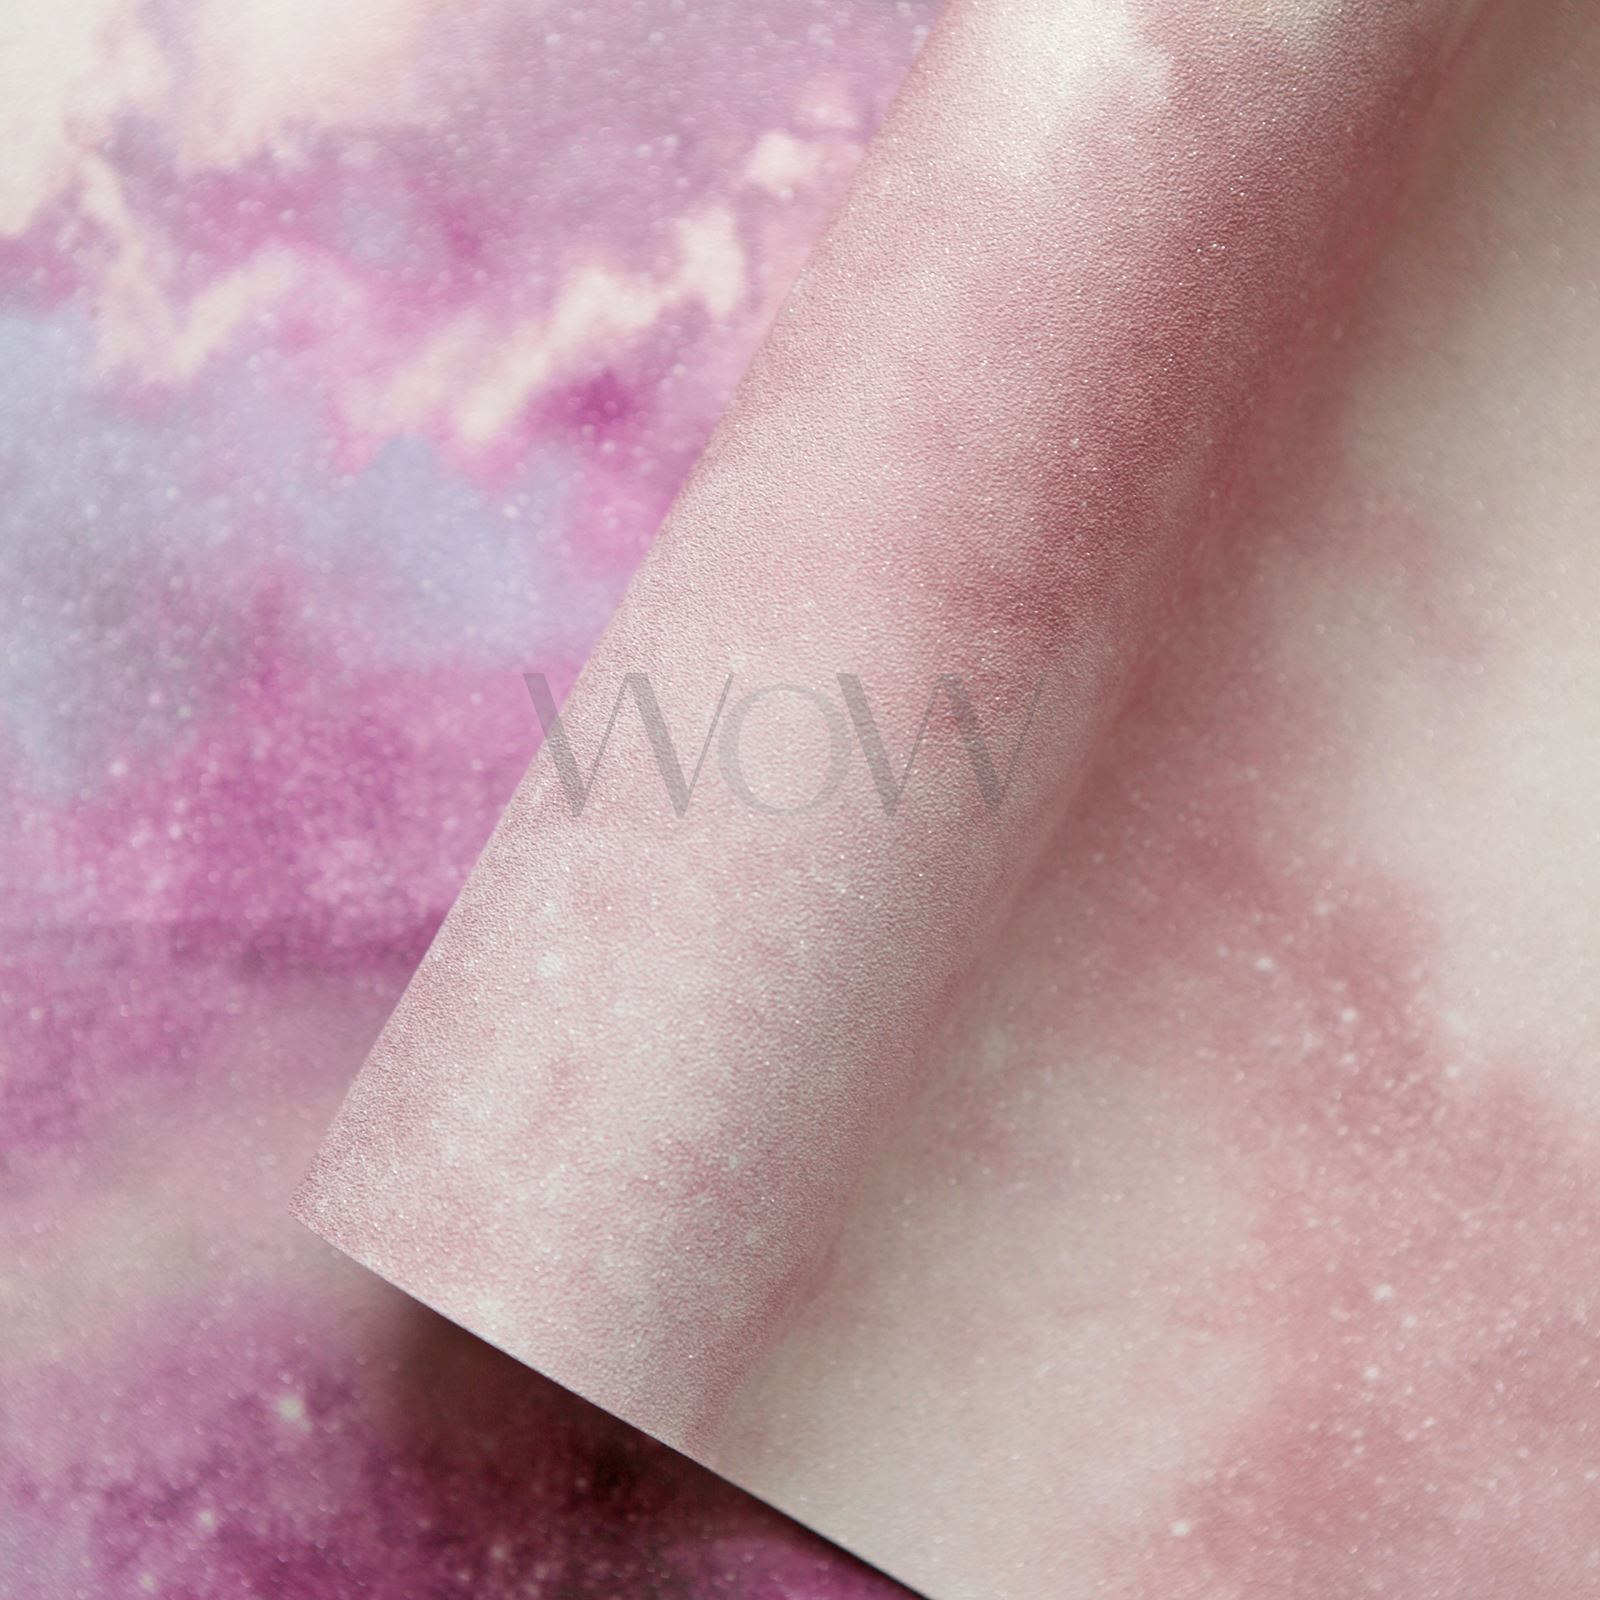 Papel Decorativo Morado Detalles De Arthouse Diamante Galaxy Nube Papel Pintado Espacio Efecto Brillo Morado Rosa